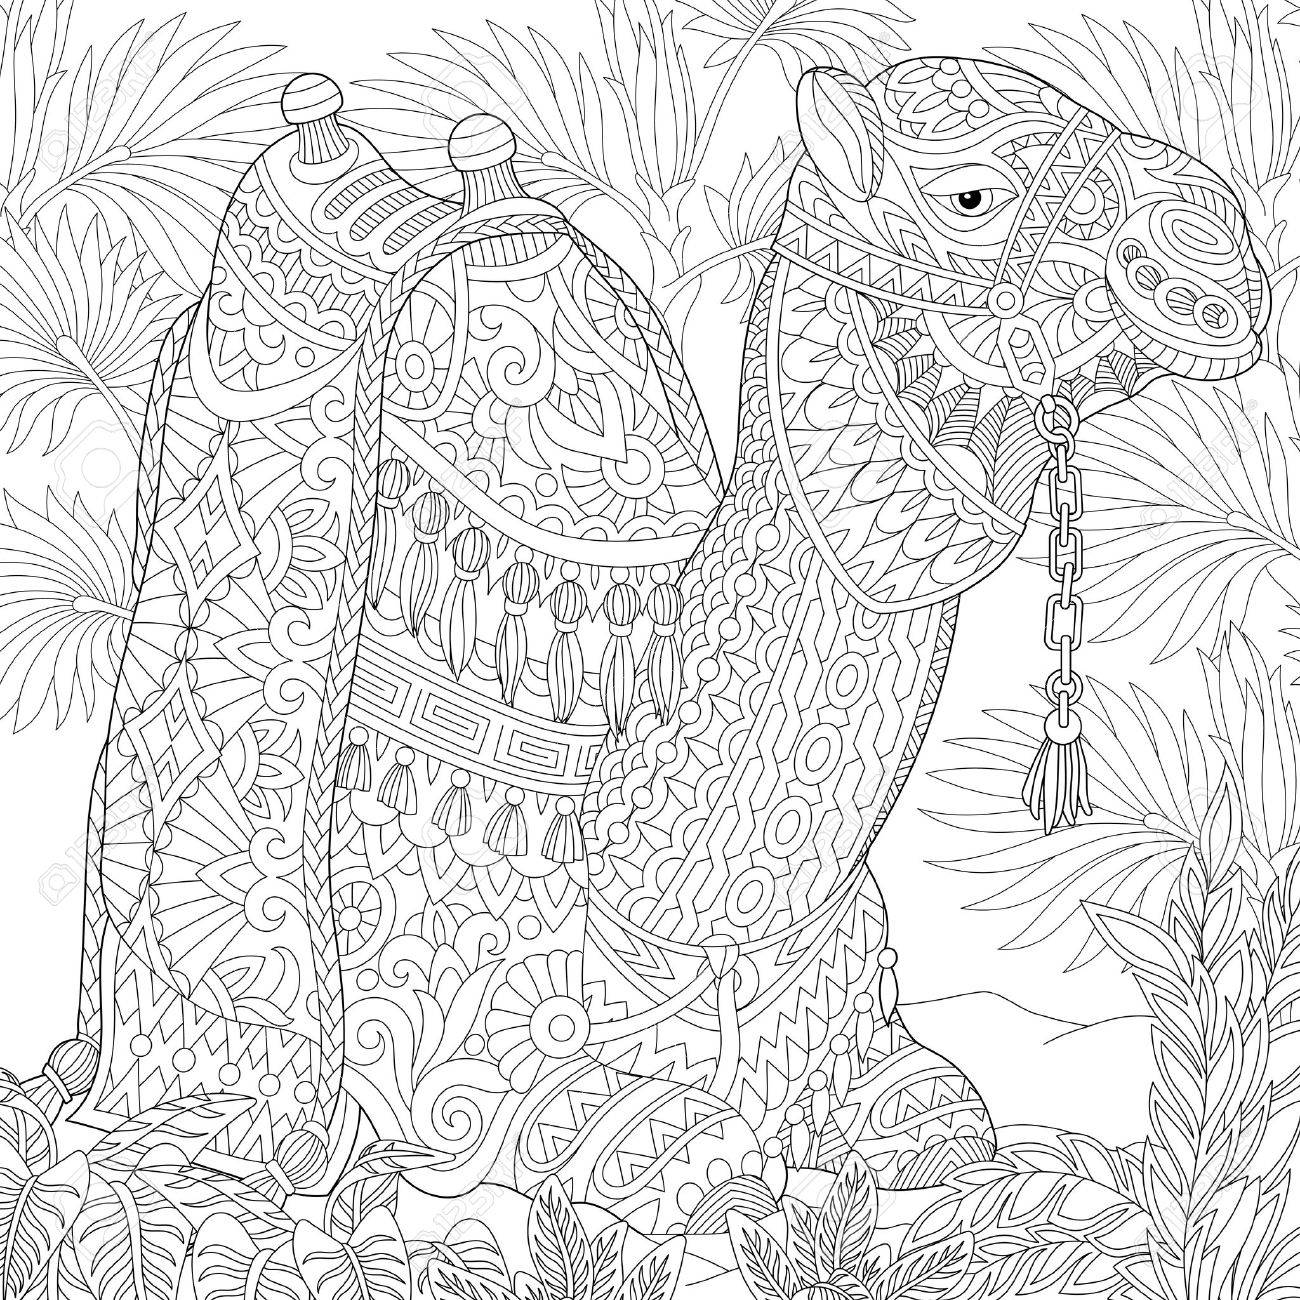 Stylized camel sitting among palm trees in desert oasis. sketch for adult anti stress coloring book page with doodle and elements. - 60323984